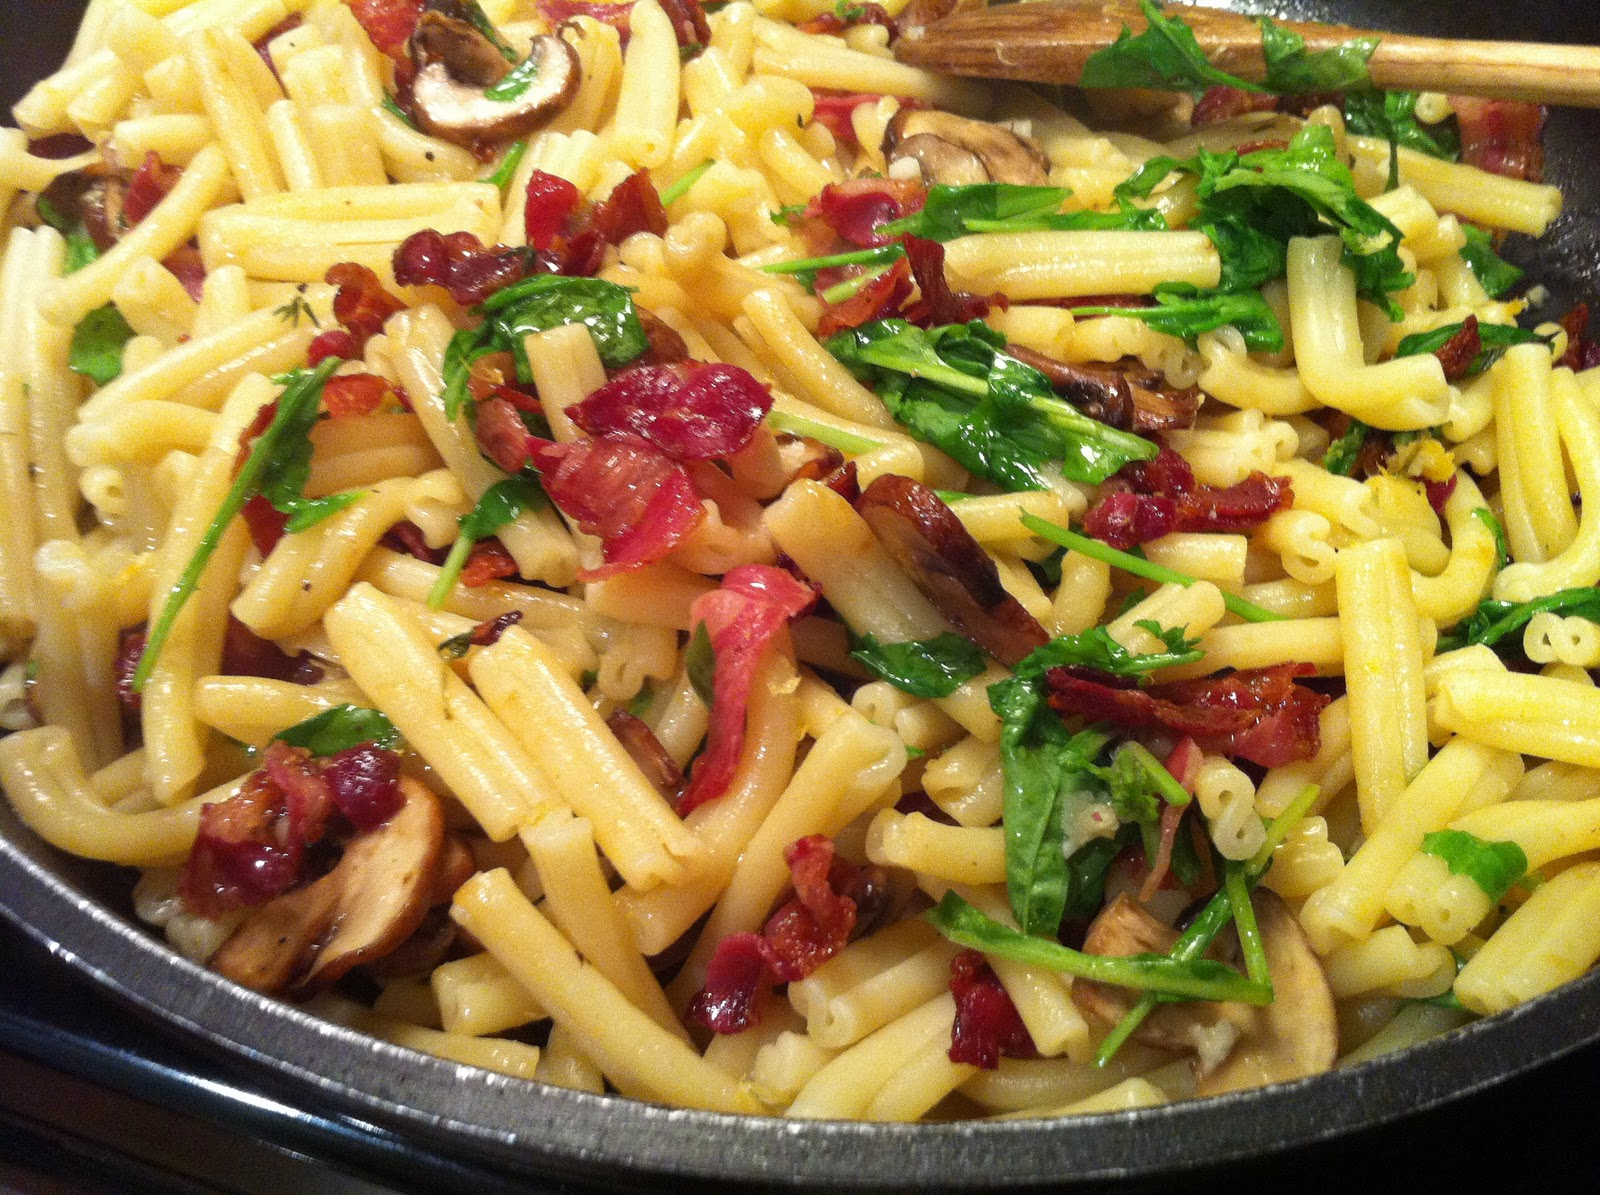 ... Feast - Every Kitchen Tells Its Stories: Taste of the Forest Pasta